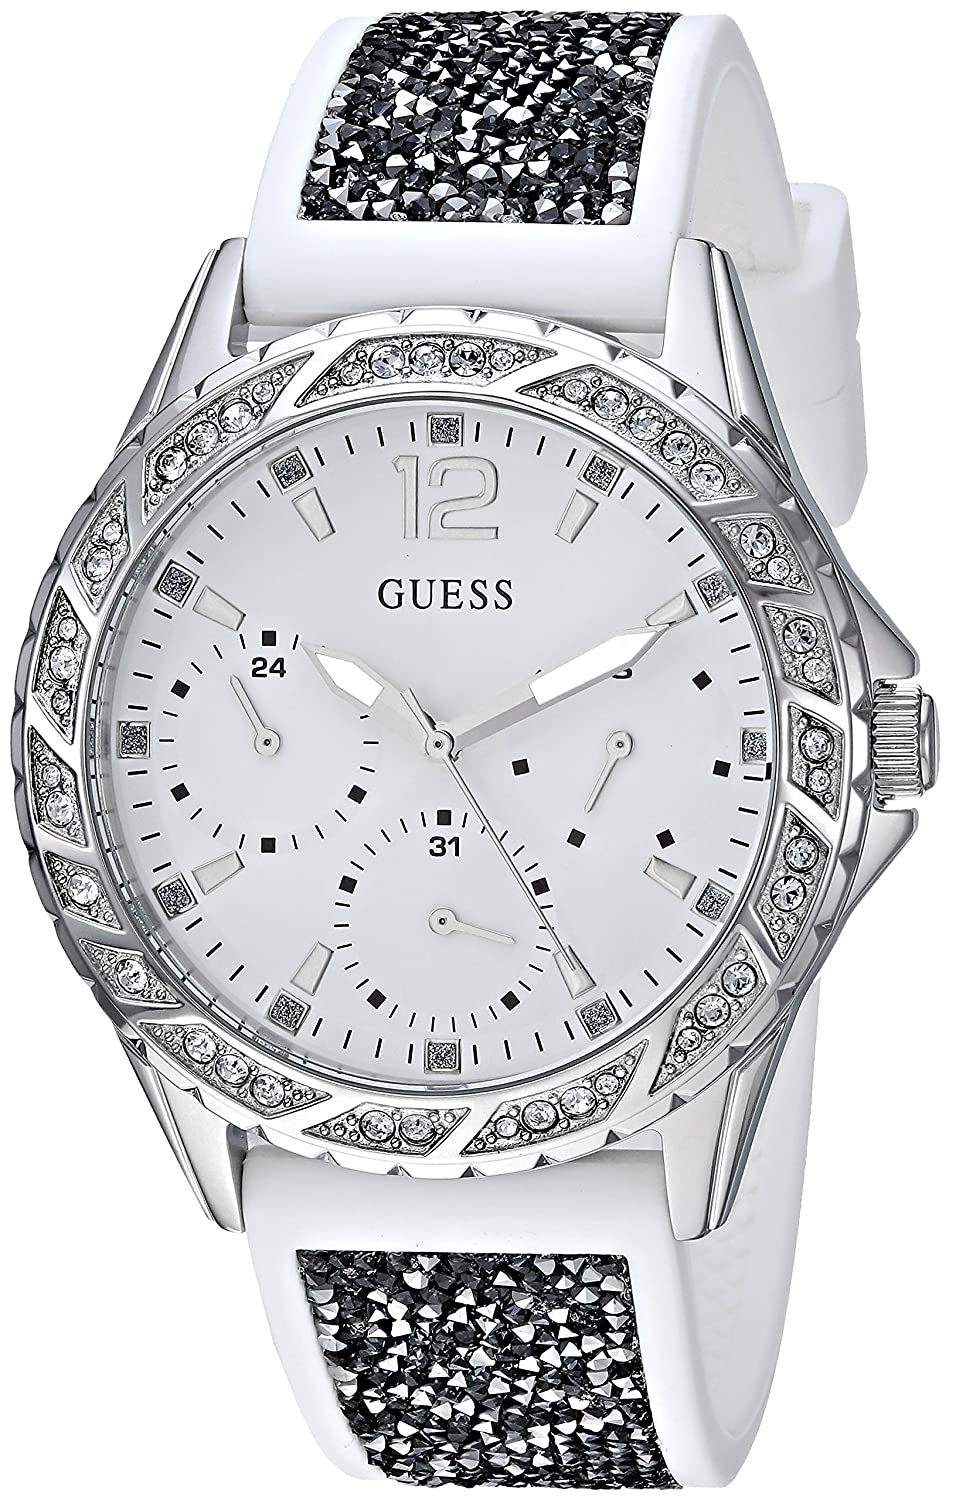 4e1e5b35de17 Amazon.com  GUESS Women s Stainless Steel Japanese-Quartz Watch with  Silicone Strap